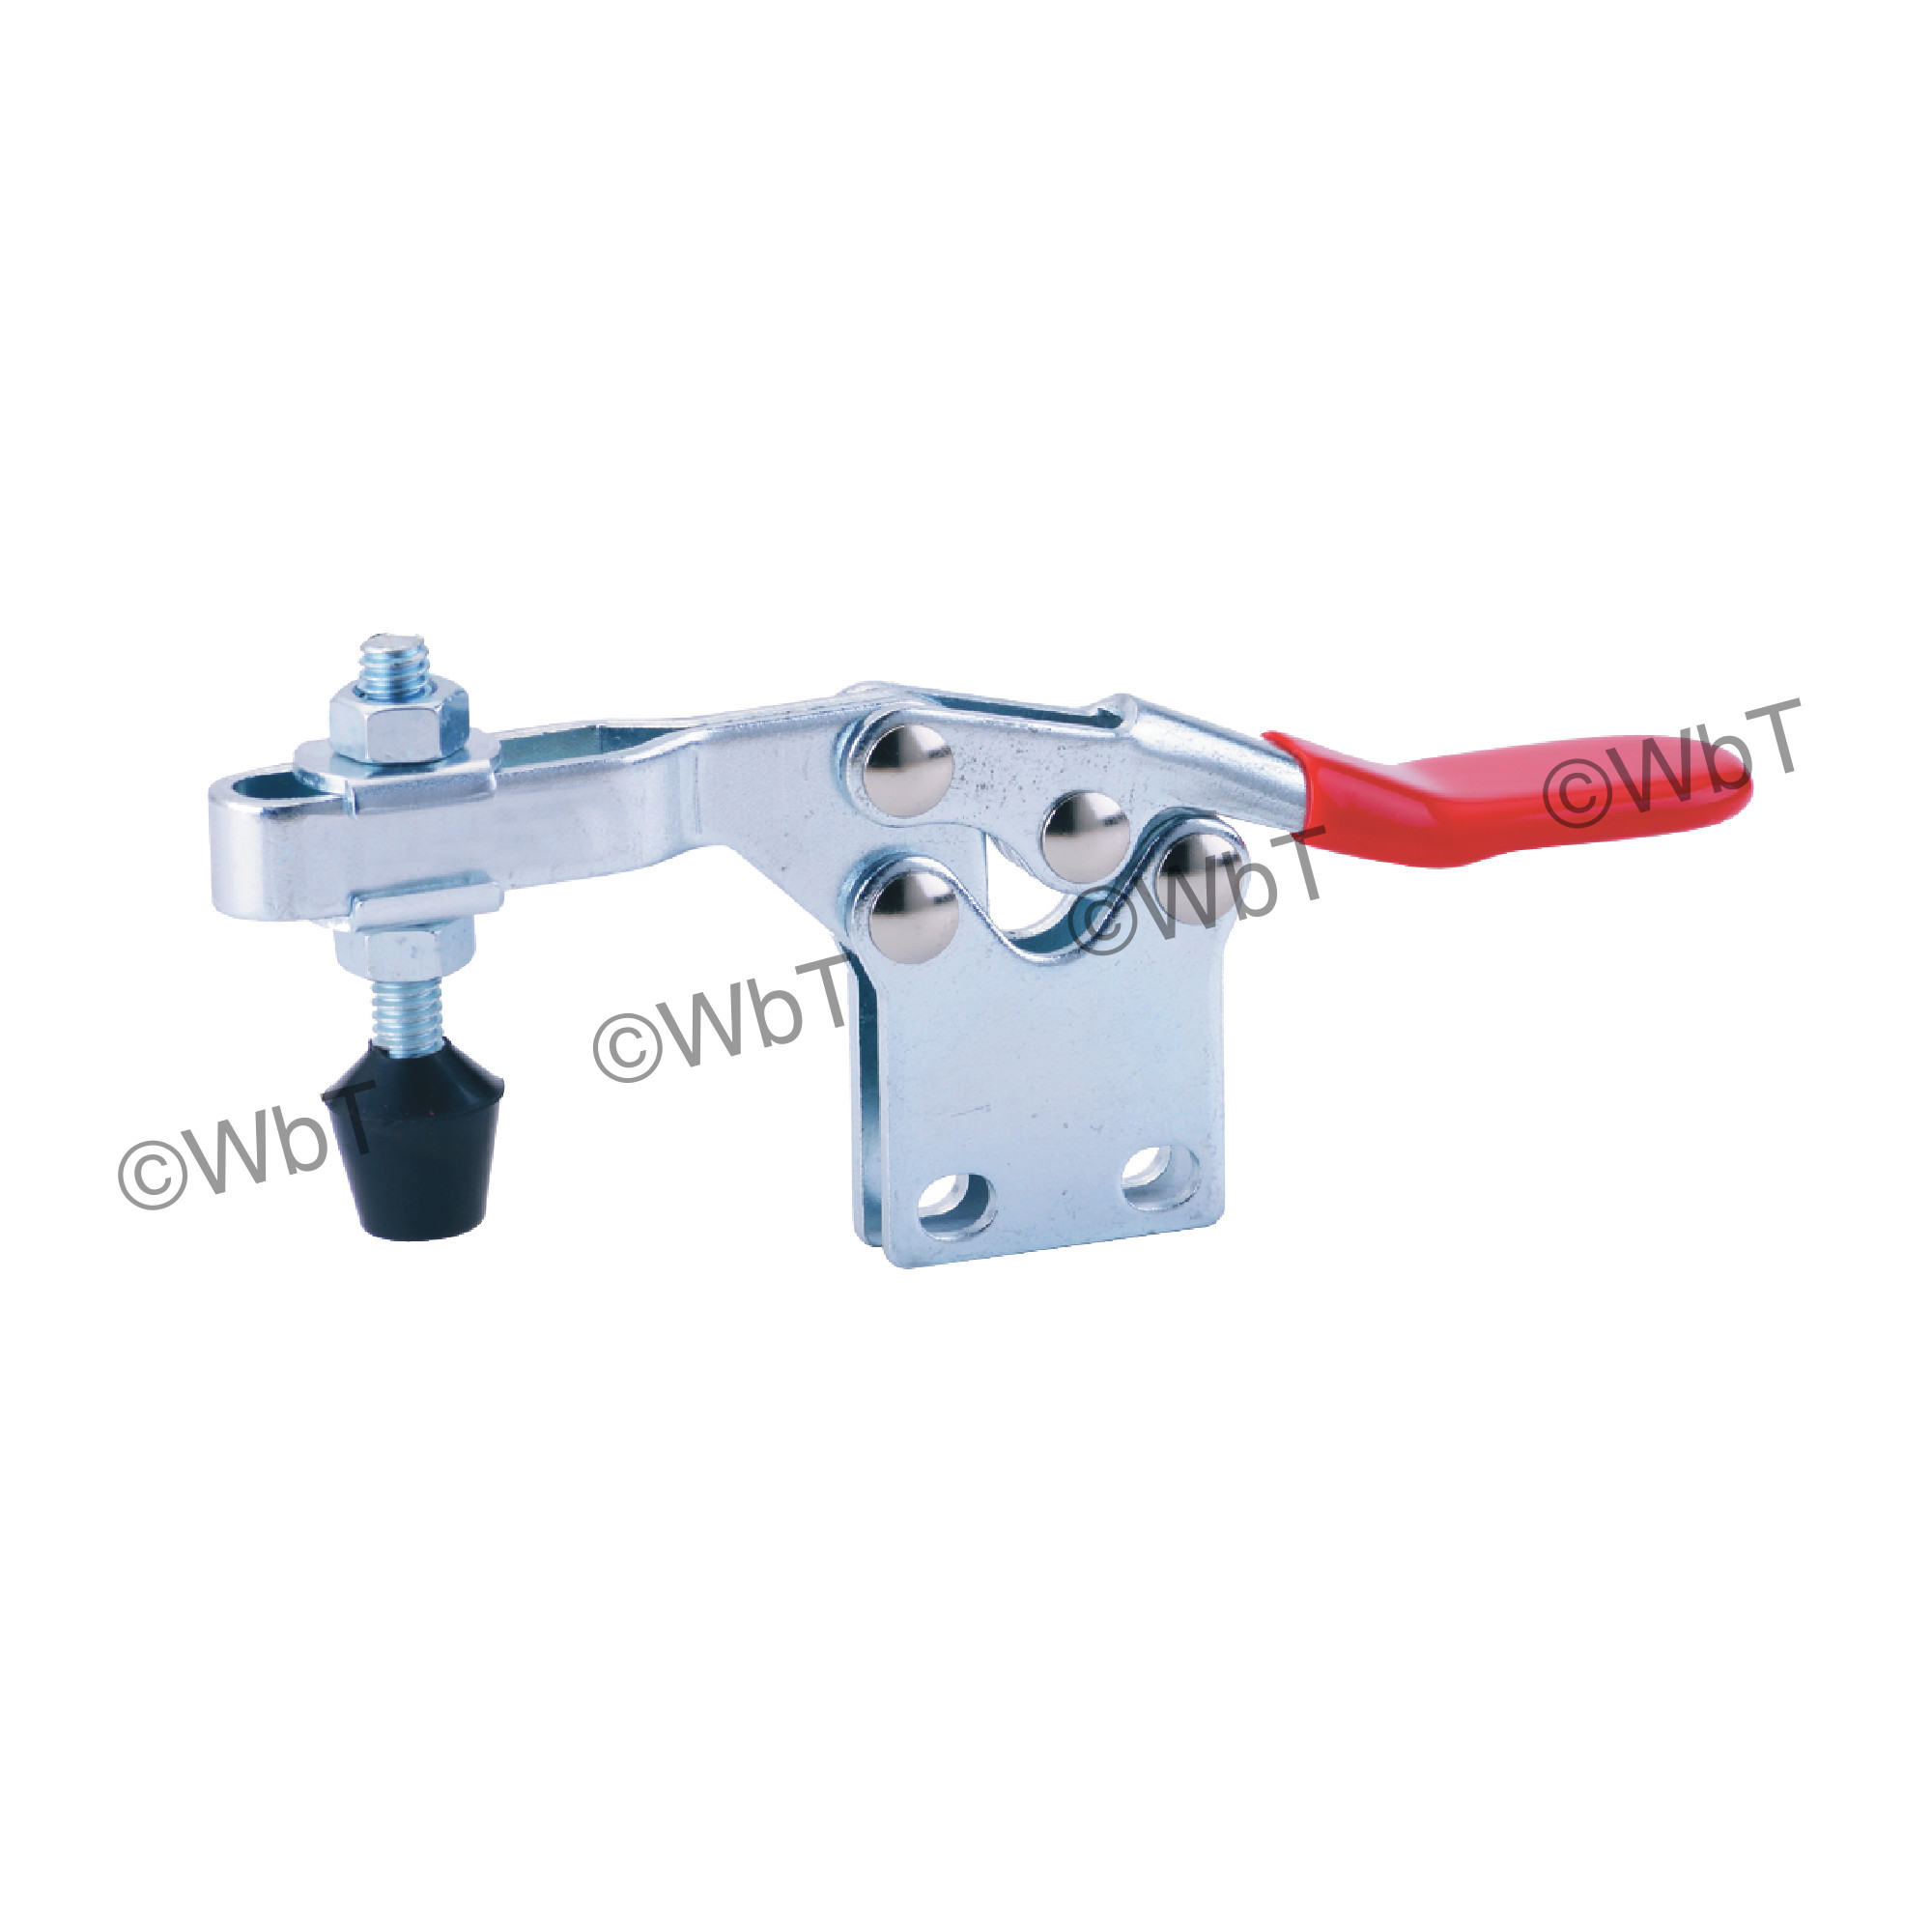 Horizontal Hold Down Action Toggle Clamp